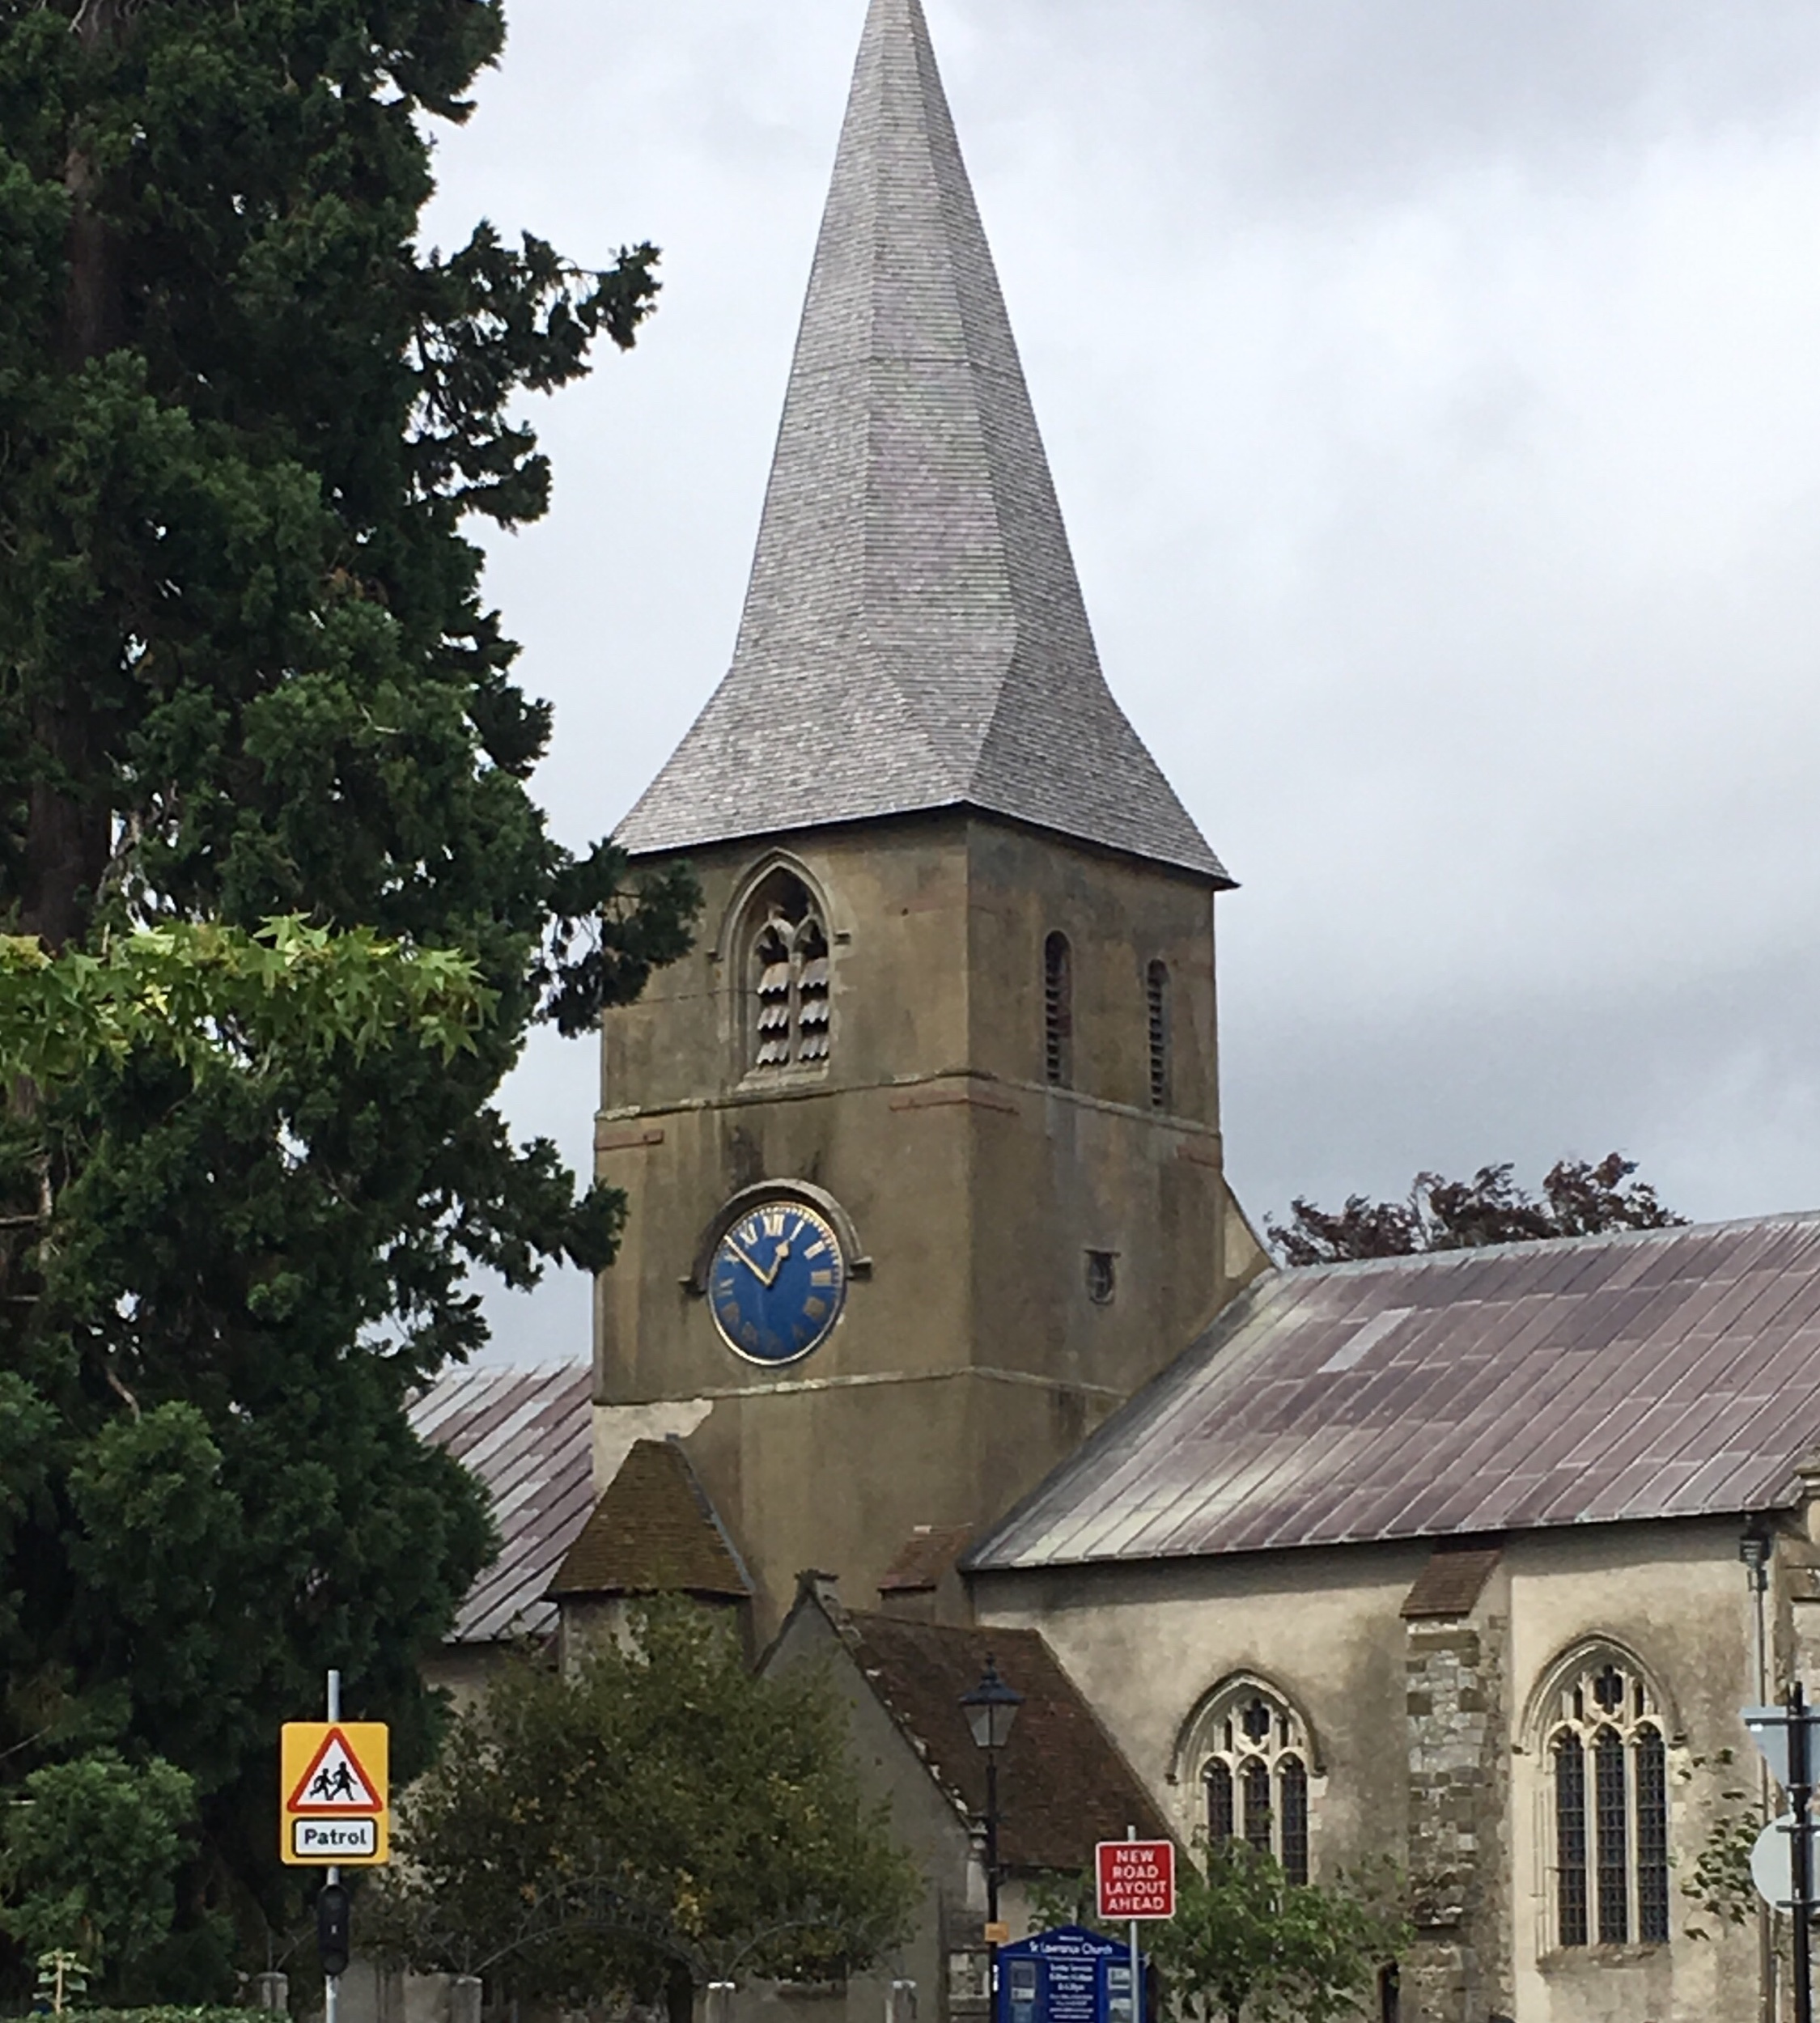 The historic St. Lawrence Church is a landmark in Alton. An English Civil War battle was fought there in 1643.